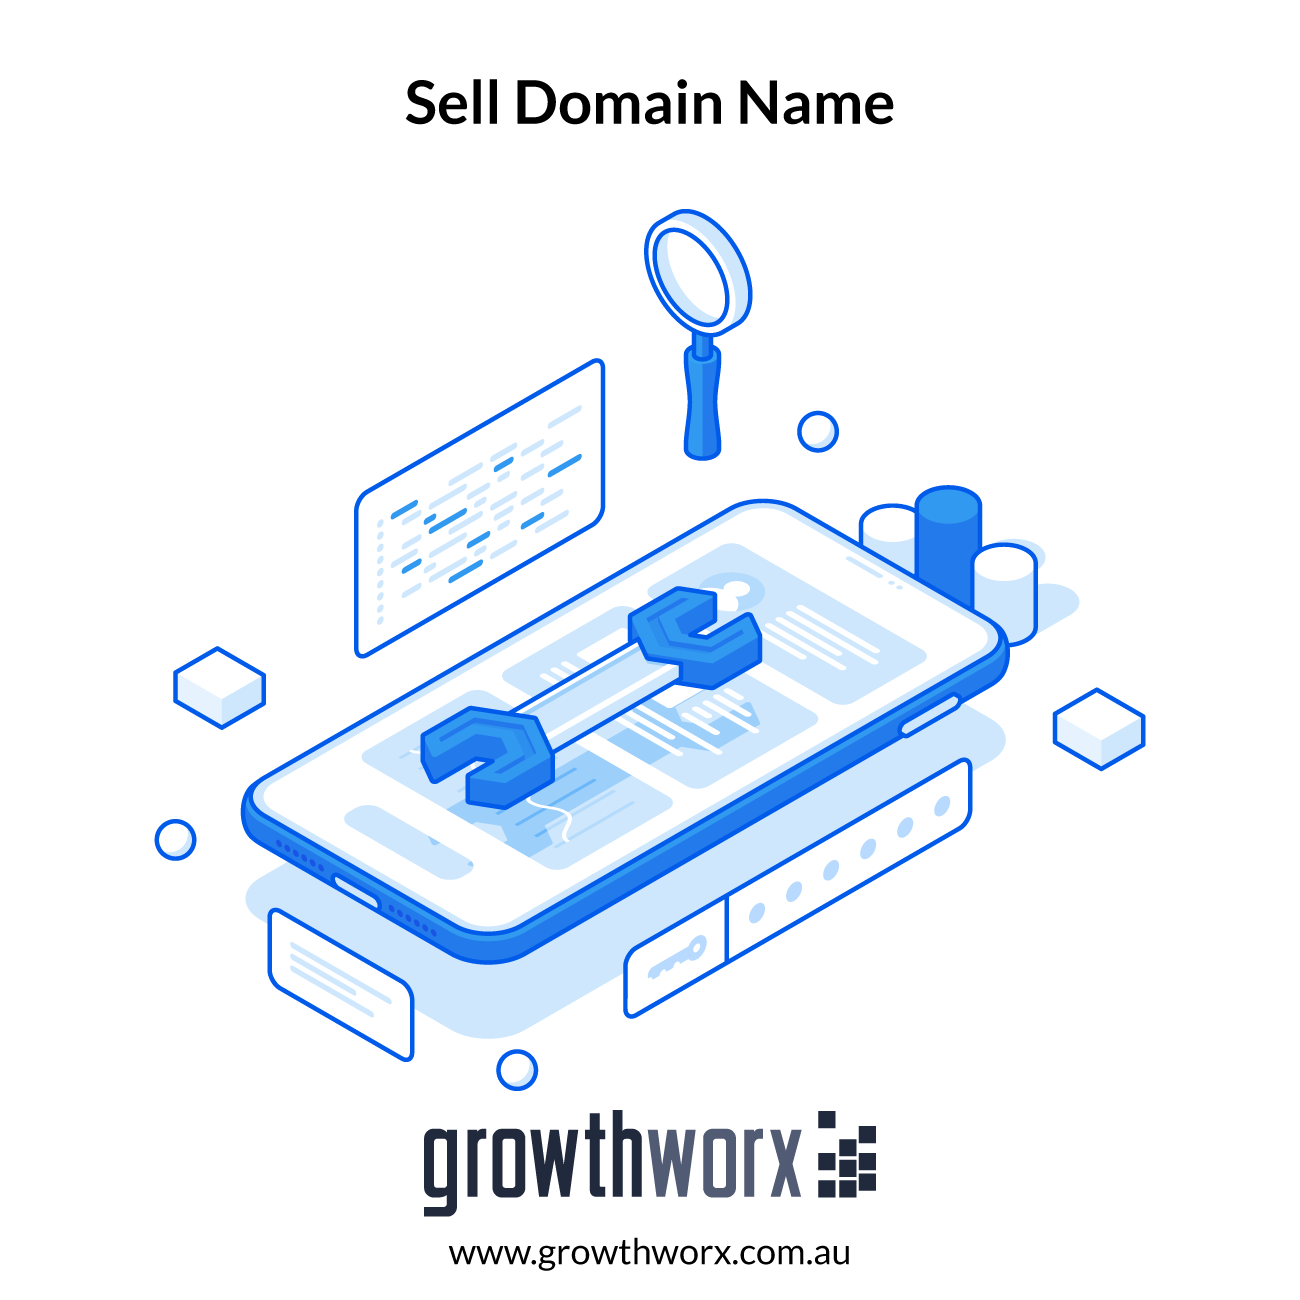 I will help you to sell domain name with listing and sales page 1